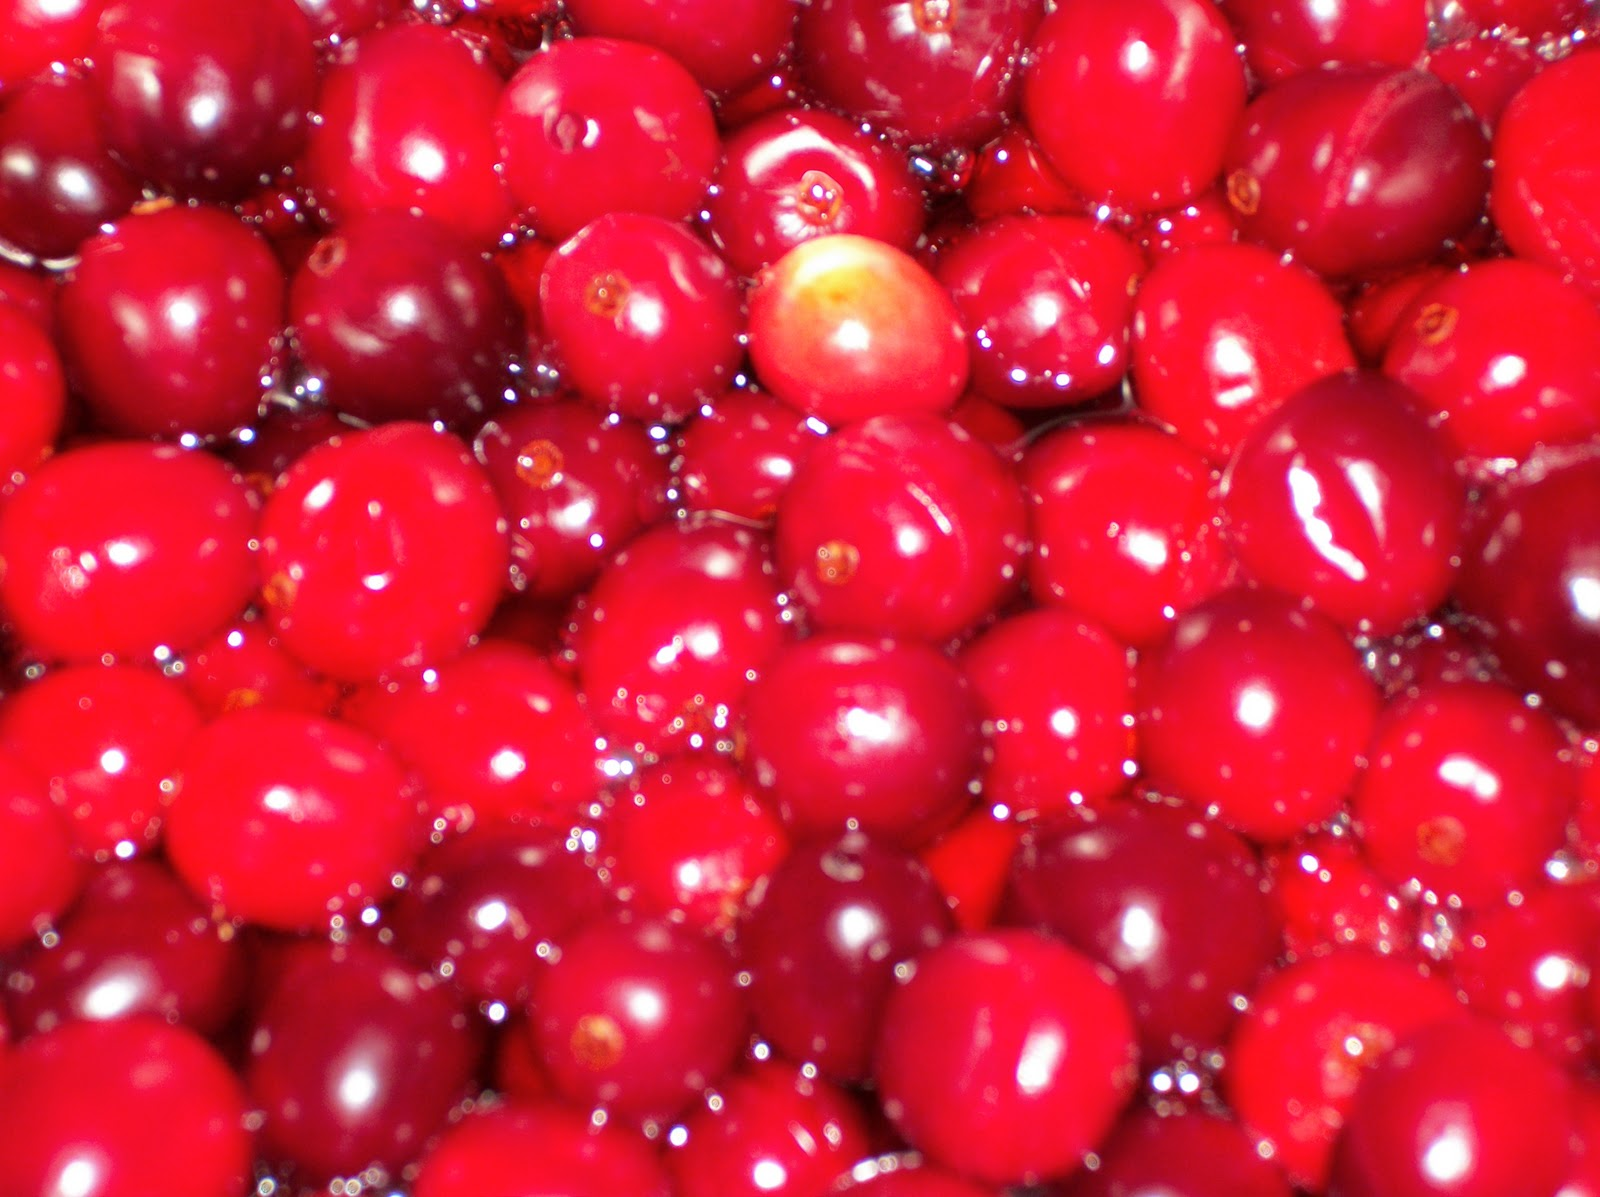 Heart, Hands, Home: Homemade Jellied Cranberry Sauce